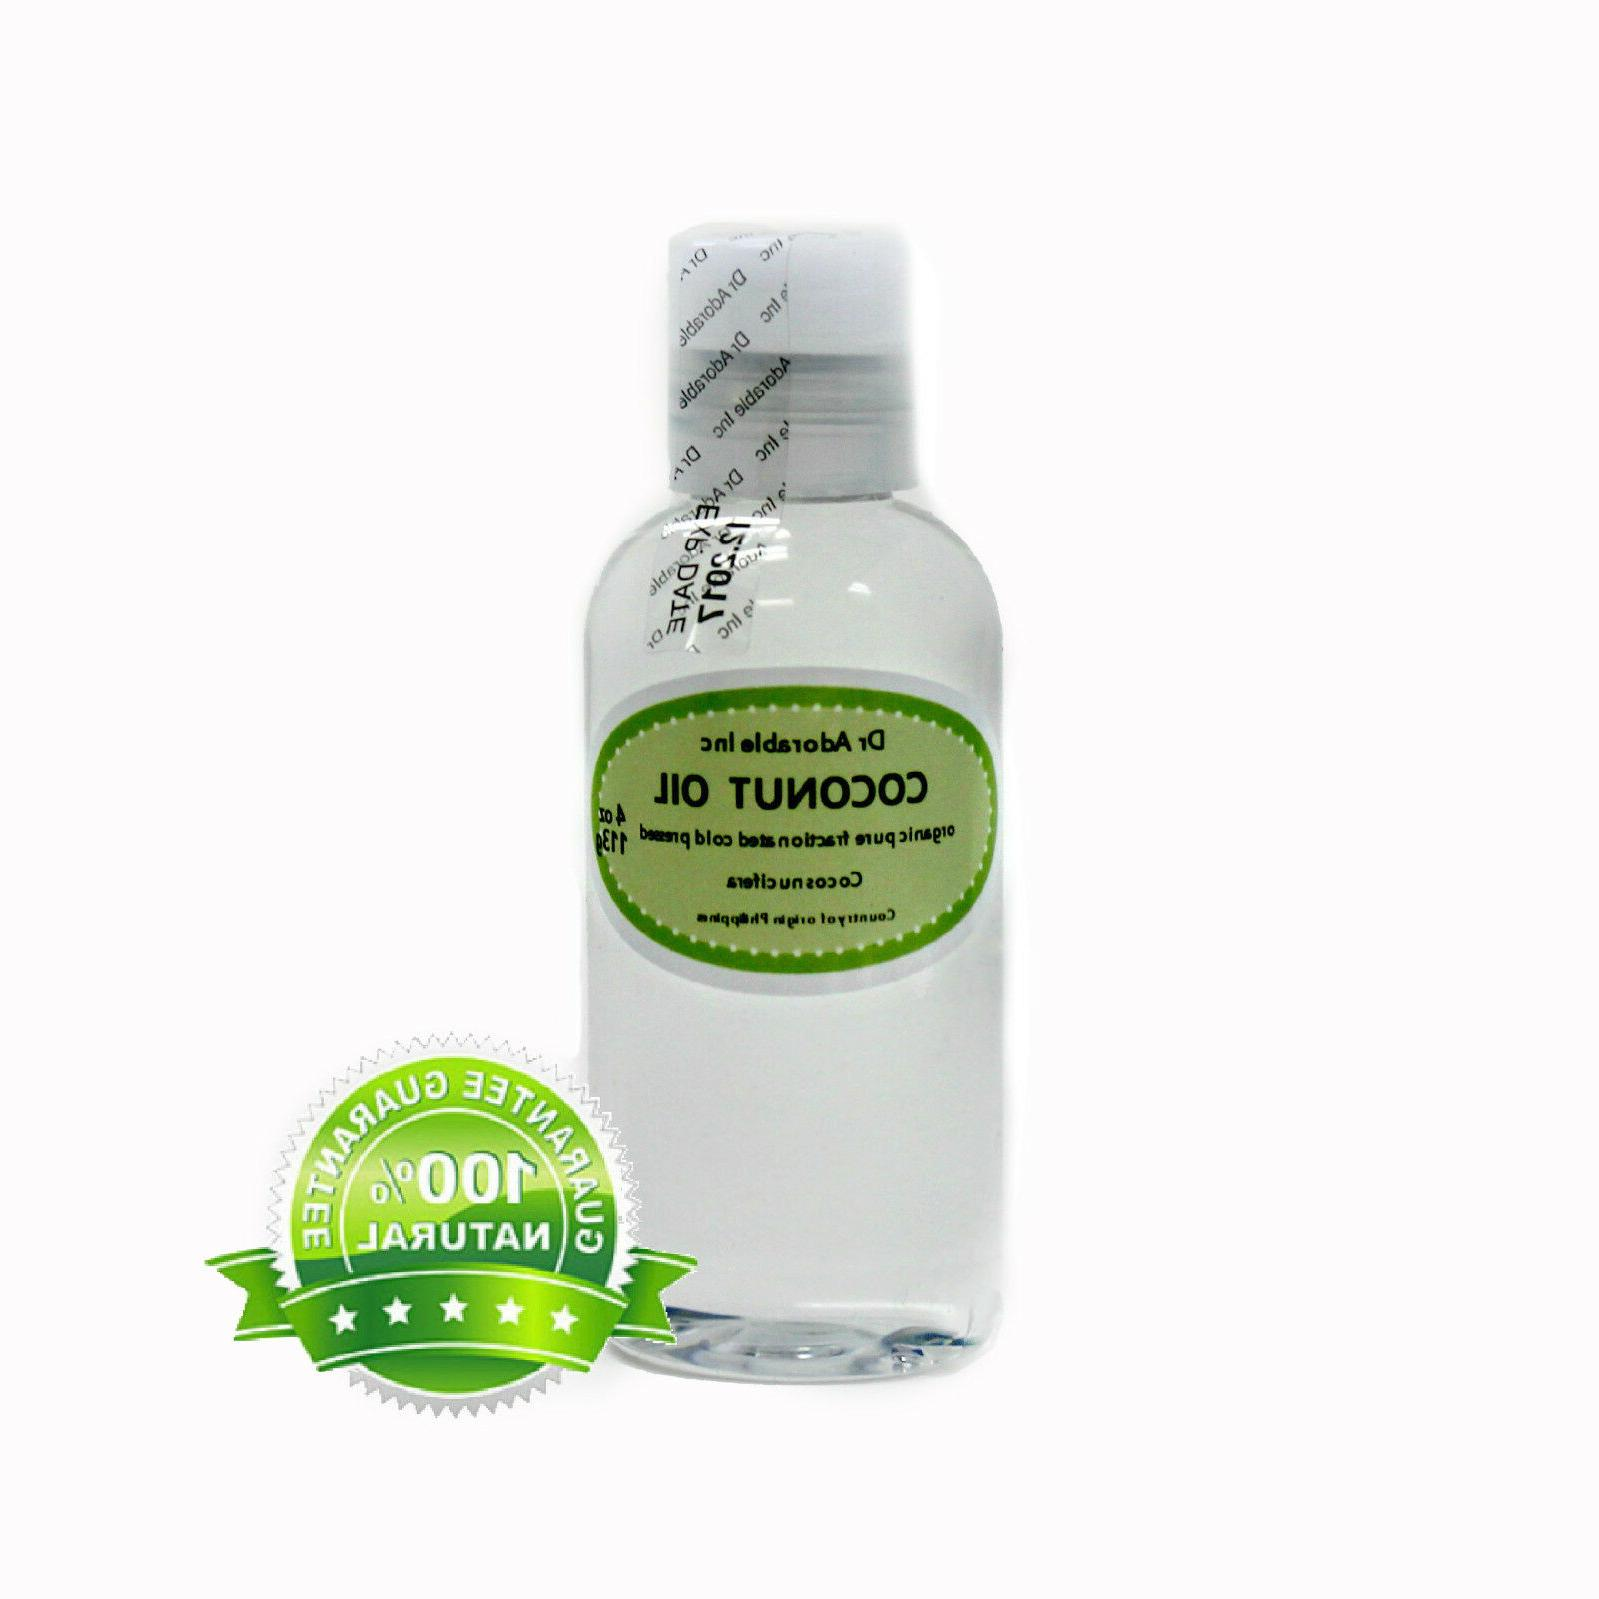 4 oz Fractionated Coconut Oil Pure & Organic Beauty Product